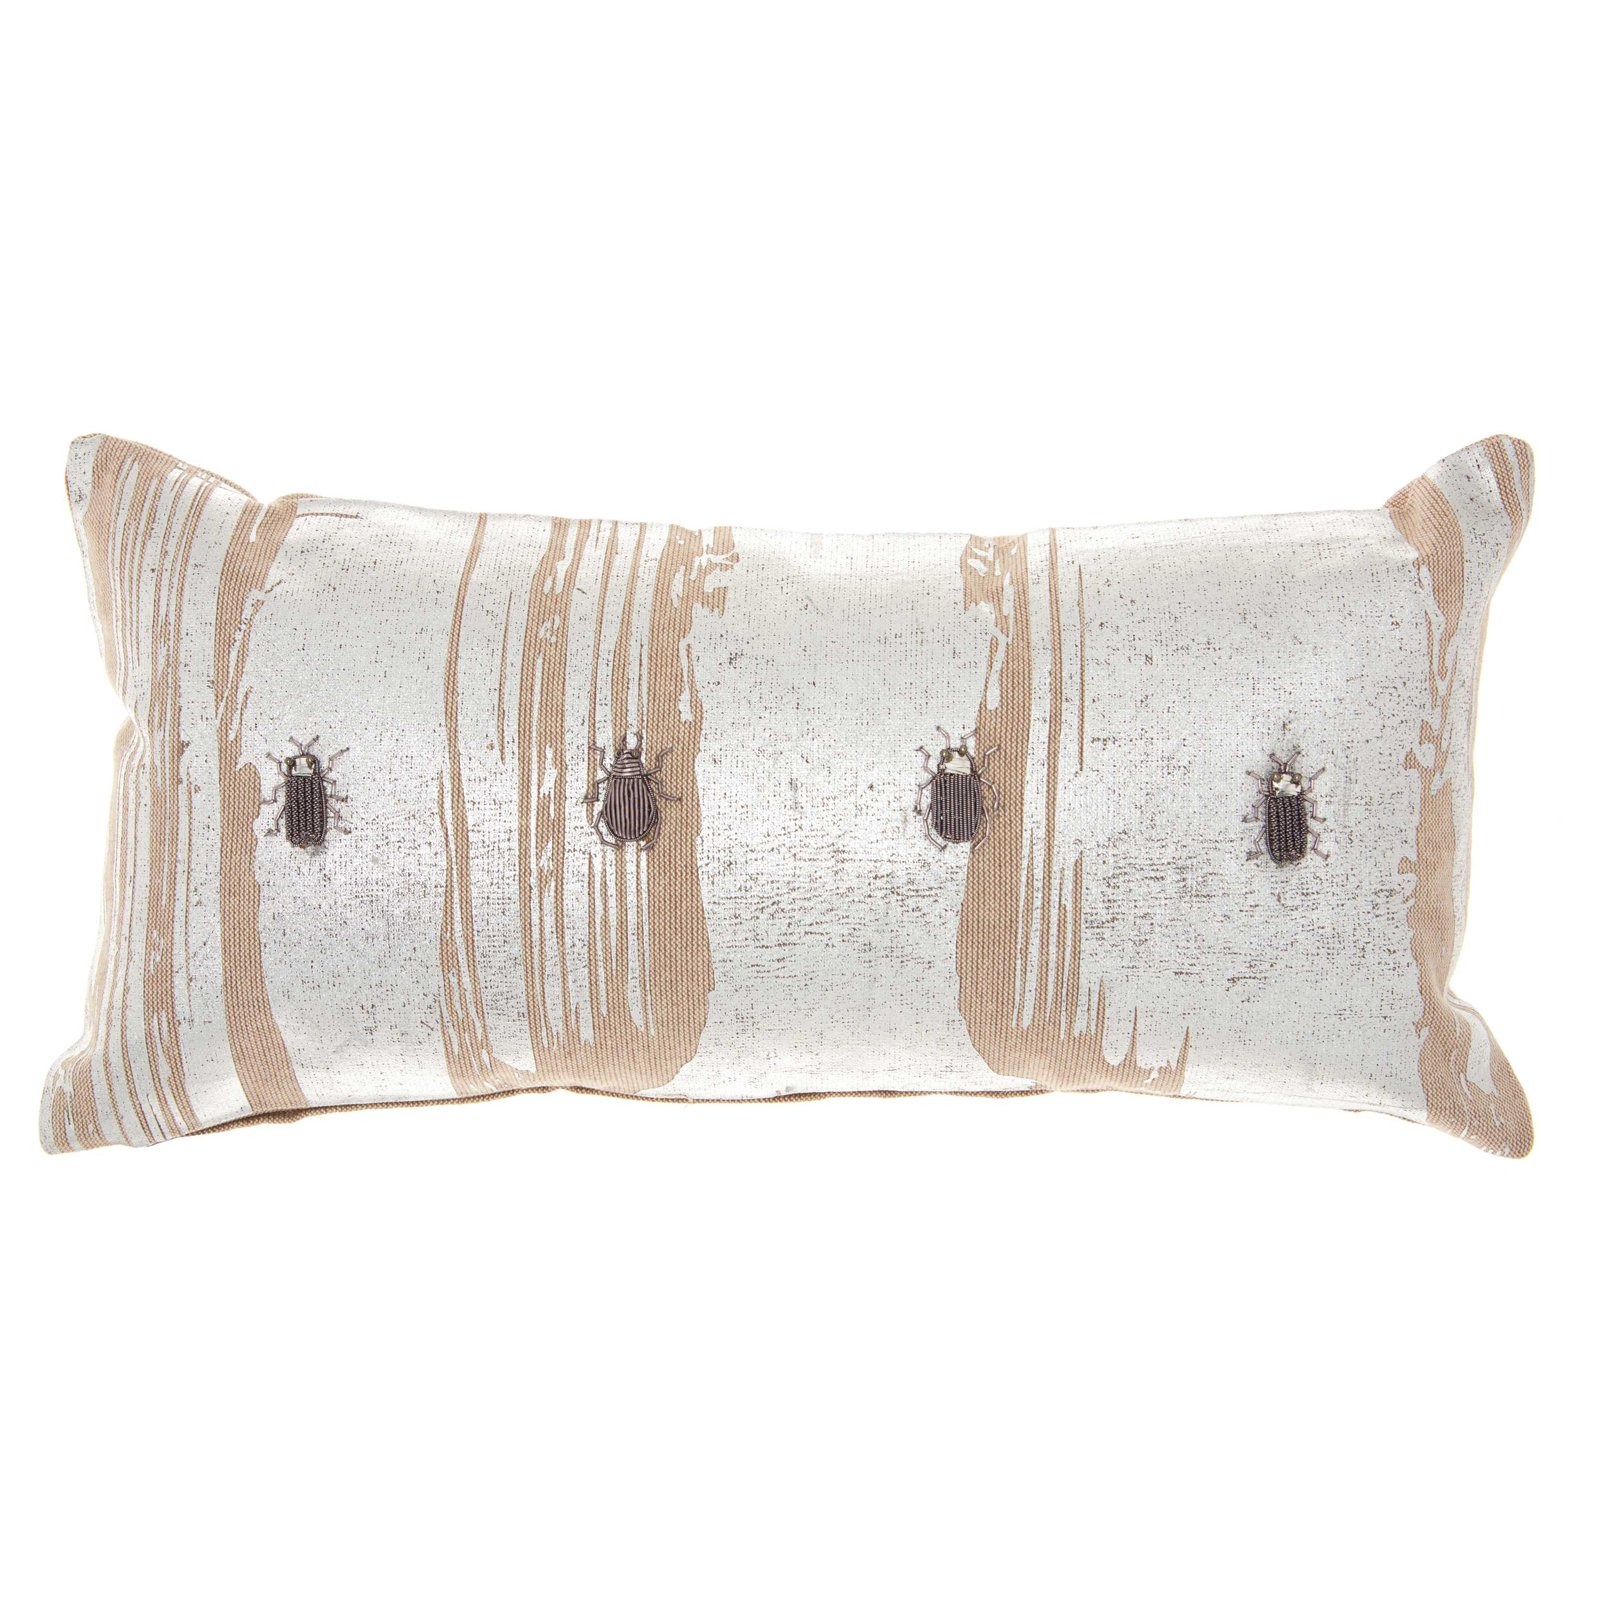 Nourison Couture Luster Metallic Beetles Linen Throw Pillow